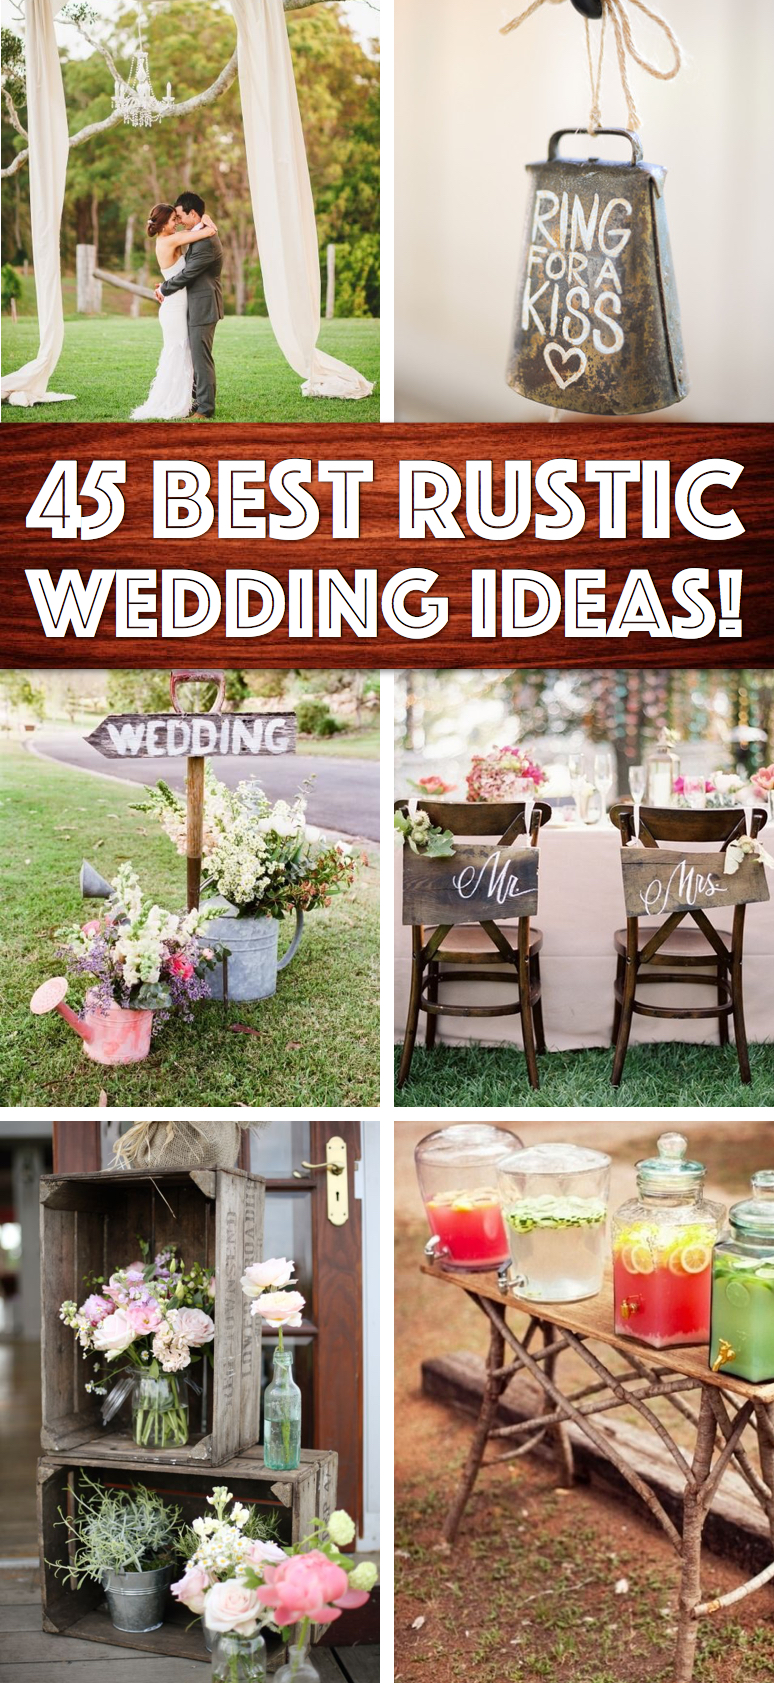 Shine on your wedding day with these breath taking rustic wedding shine on your wedding day with these breath taking rustic wedding ideas solutioingenieria